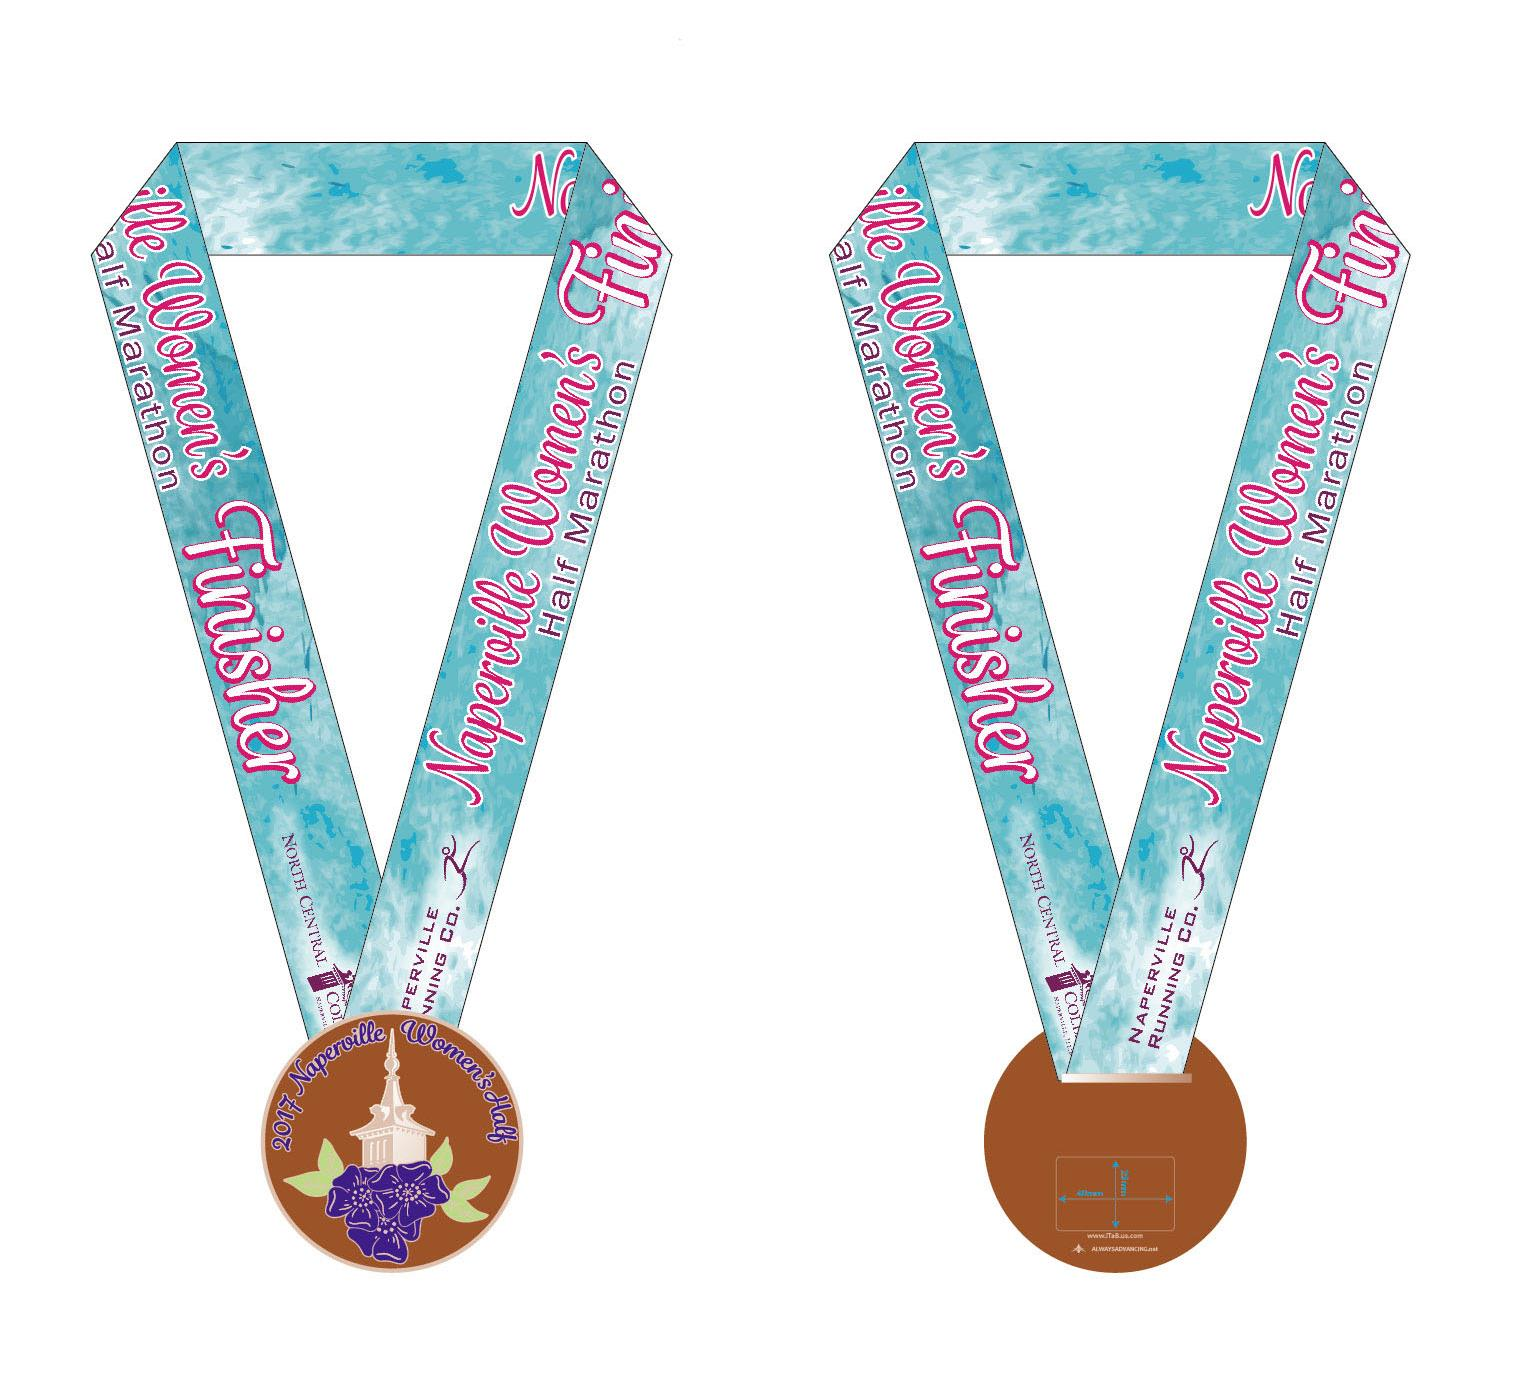 2017 Naperville Women's Half Marathon & 5K Finisher Medals Revealed